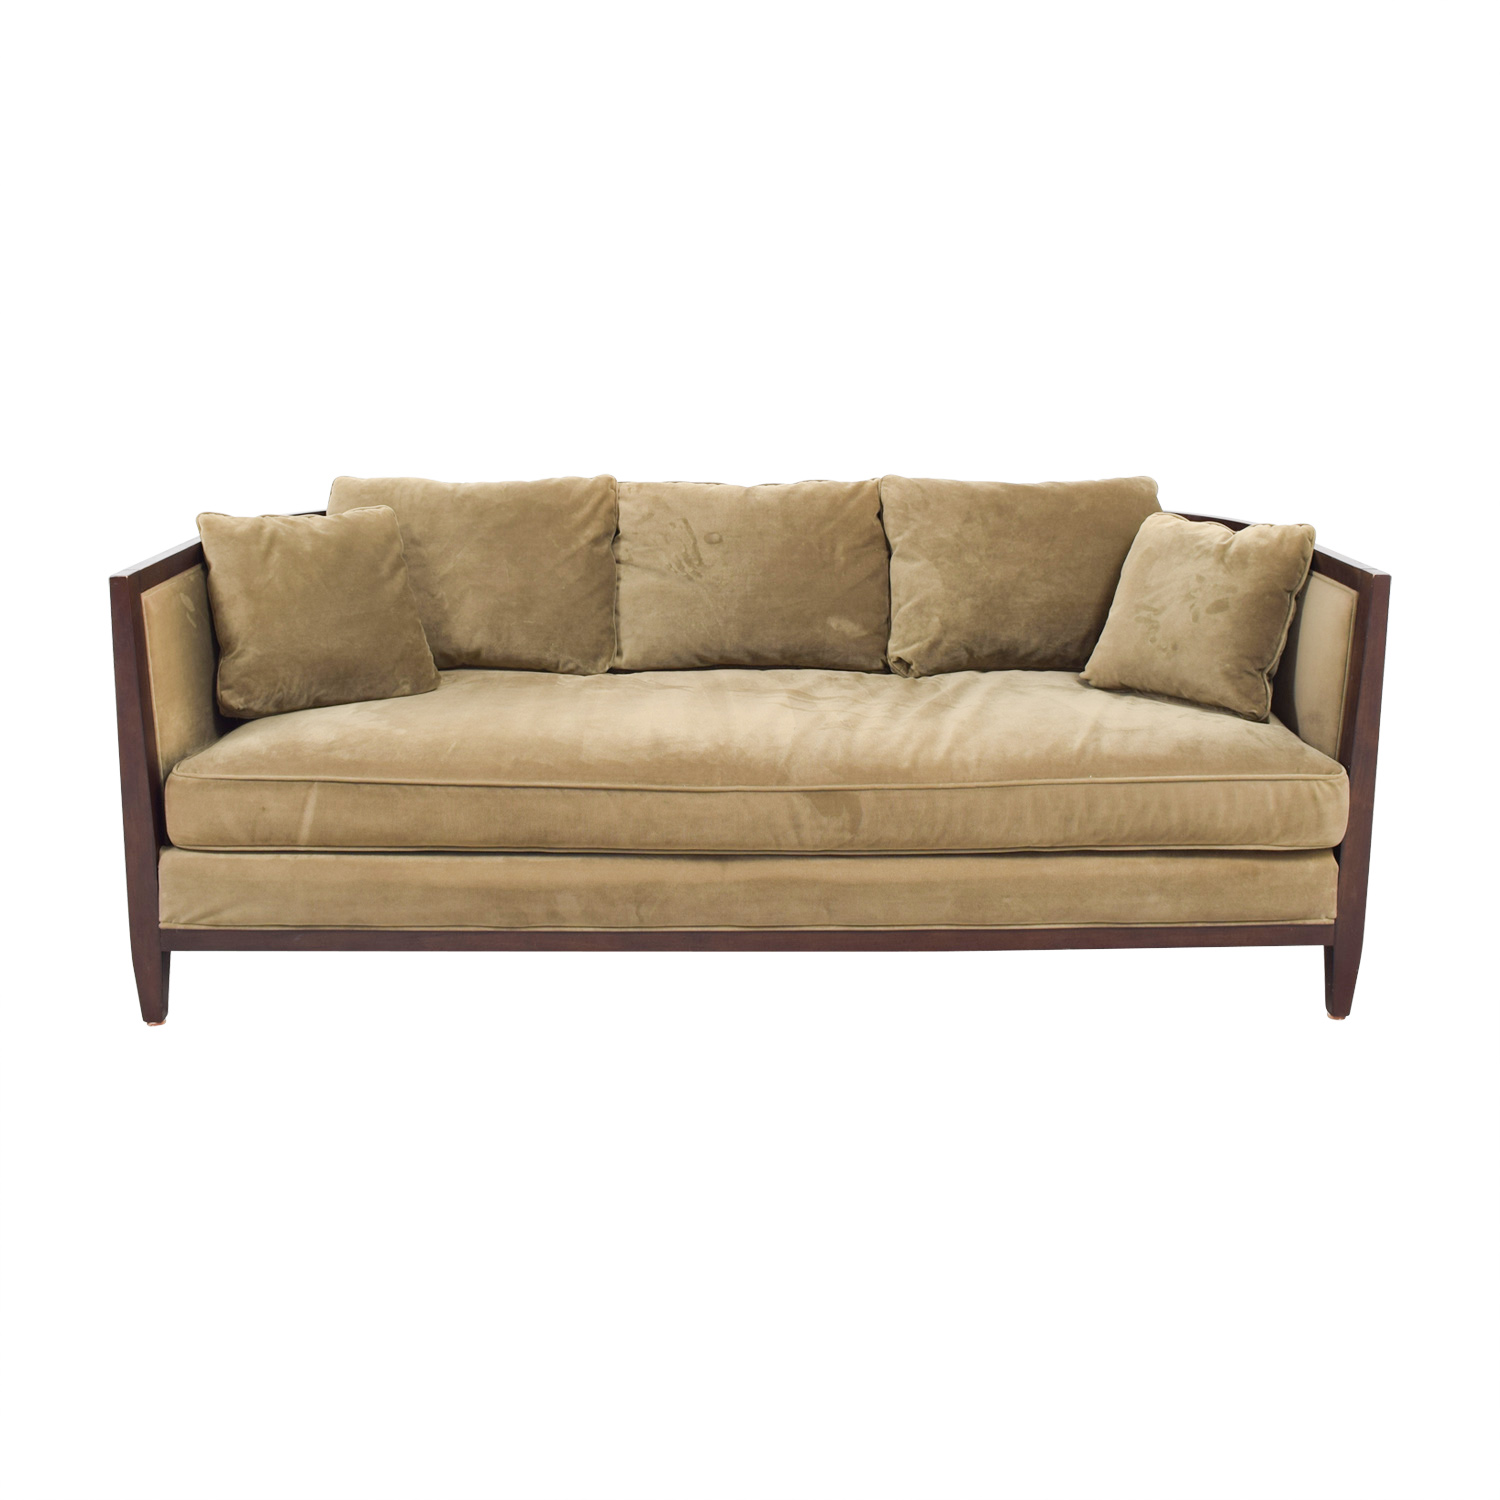 Buy Bloomingdales Brown Single Cushion Sofa Bloomingdales Sofas